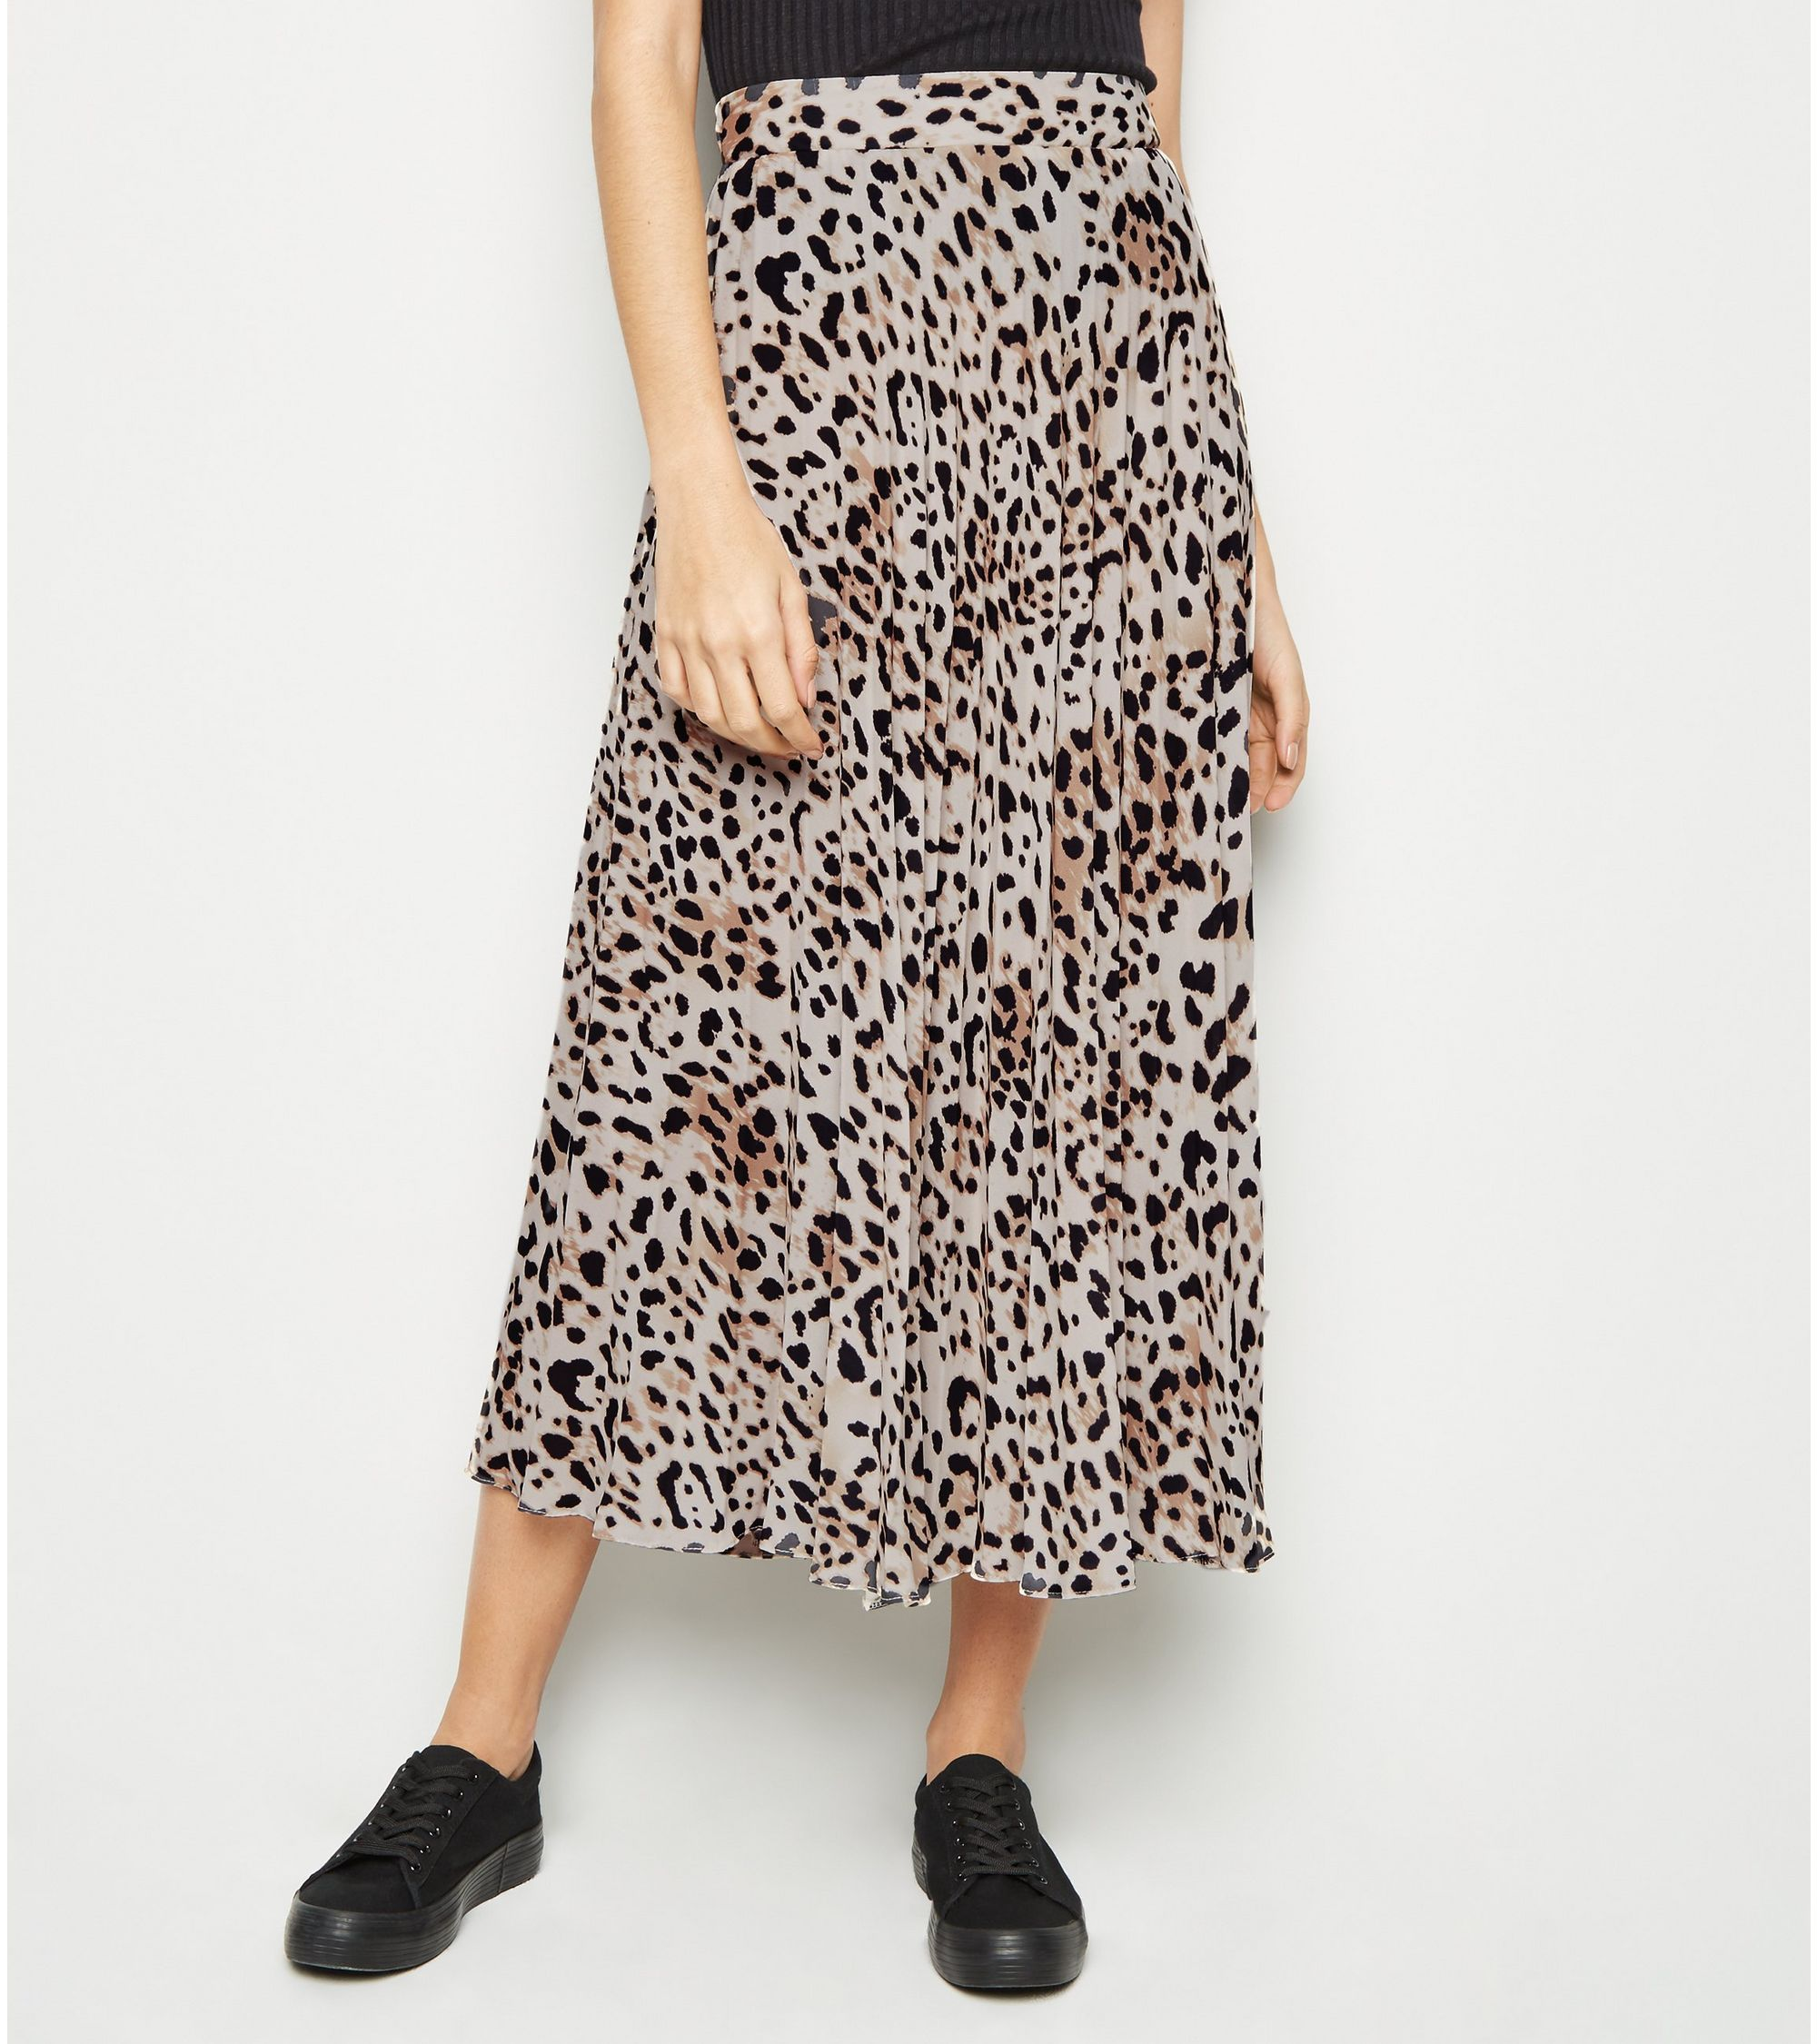 2019 clearance sale search for official lovely luster leopard print pleated midi skirt